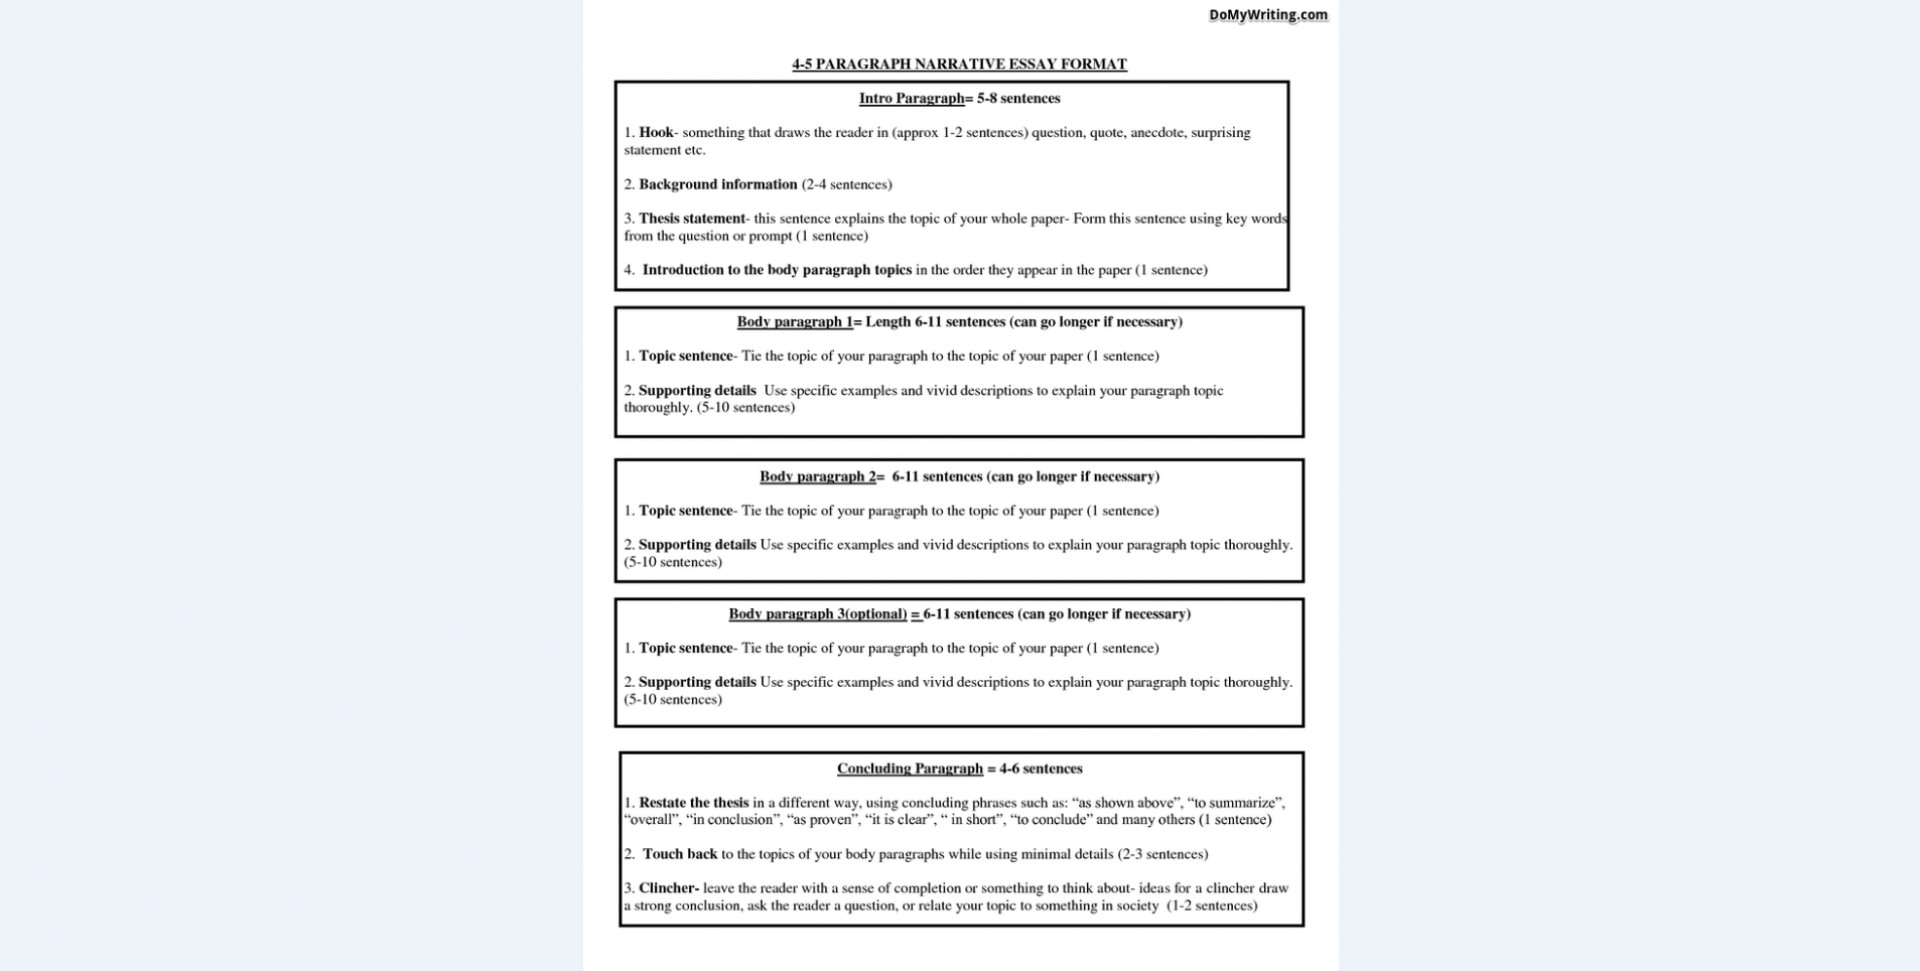 008 Narrative Essay Format Exceptional Rubric Outline Template Pdf Sample 1920